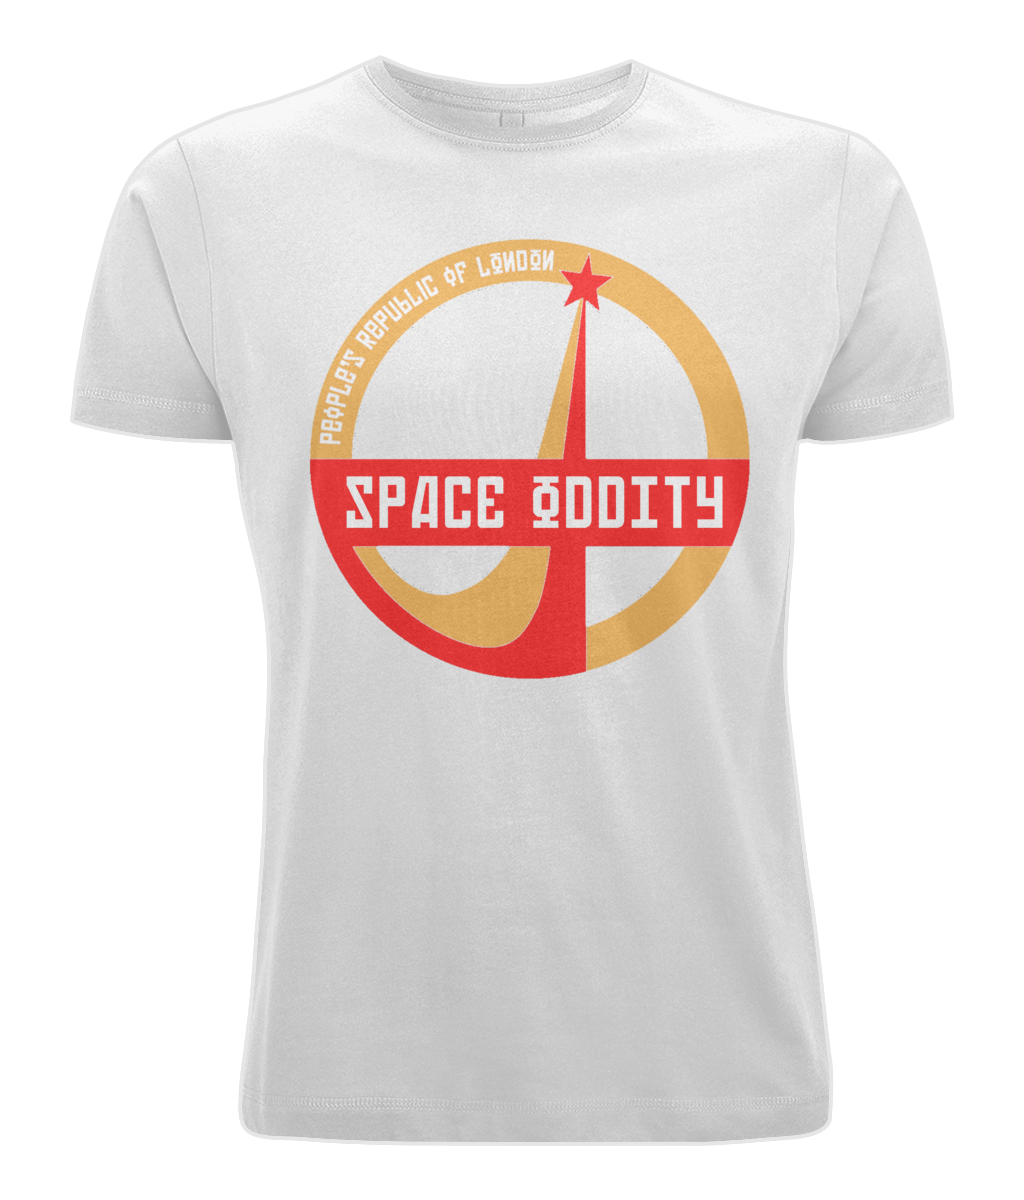 People's Republic of London – Space Oddity